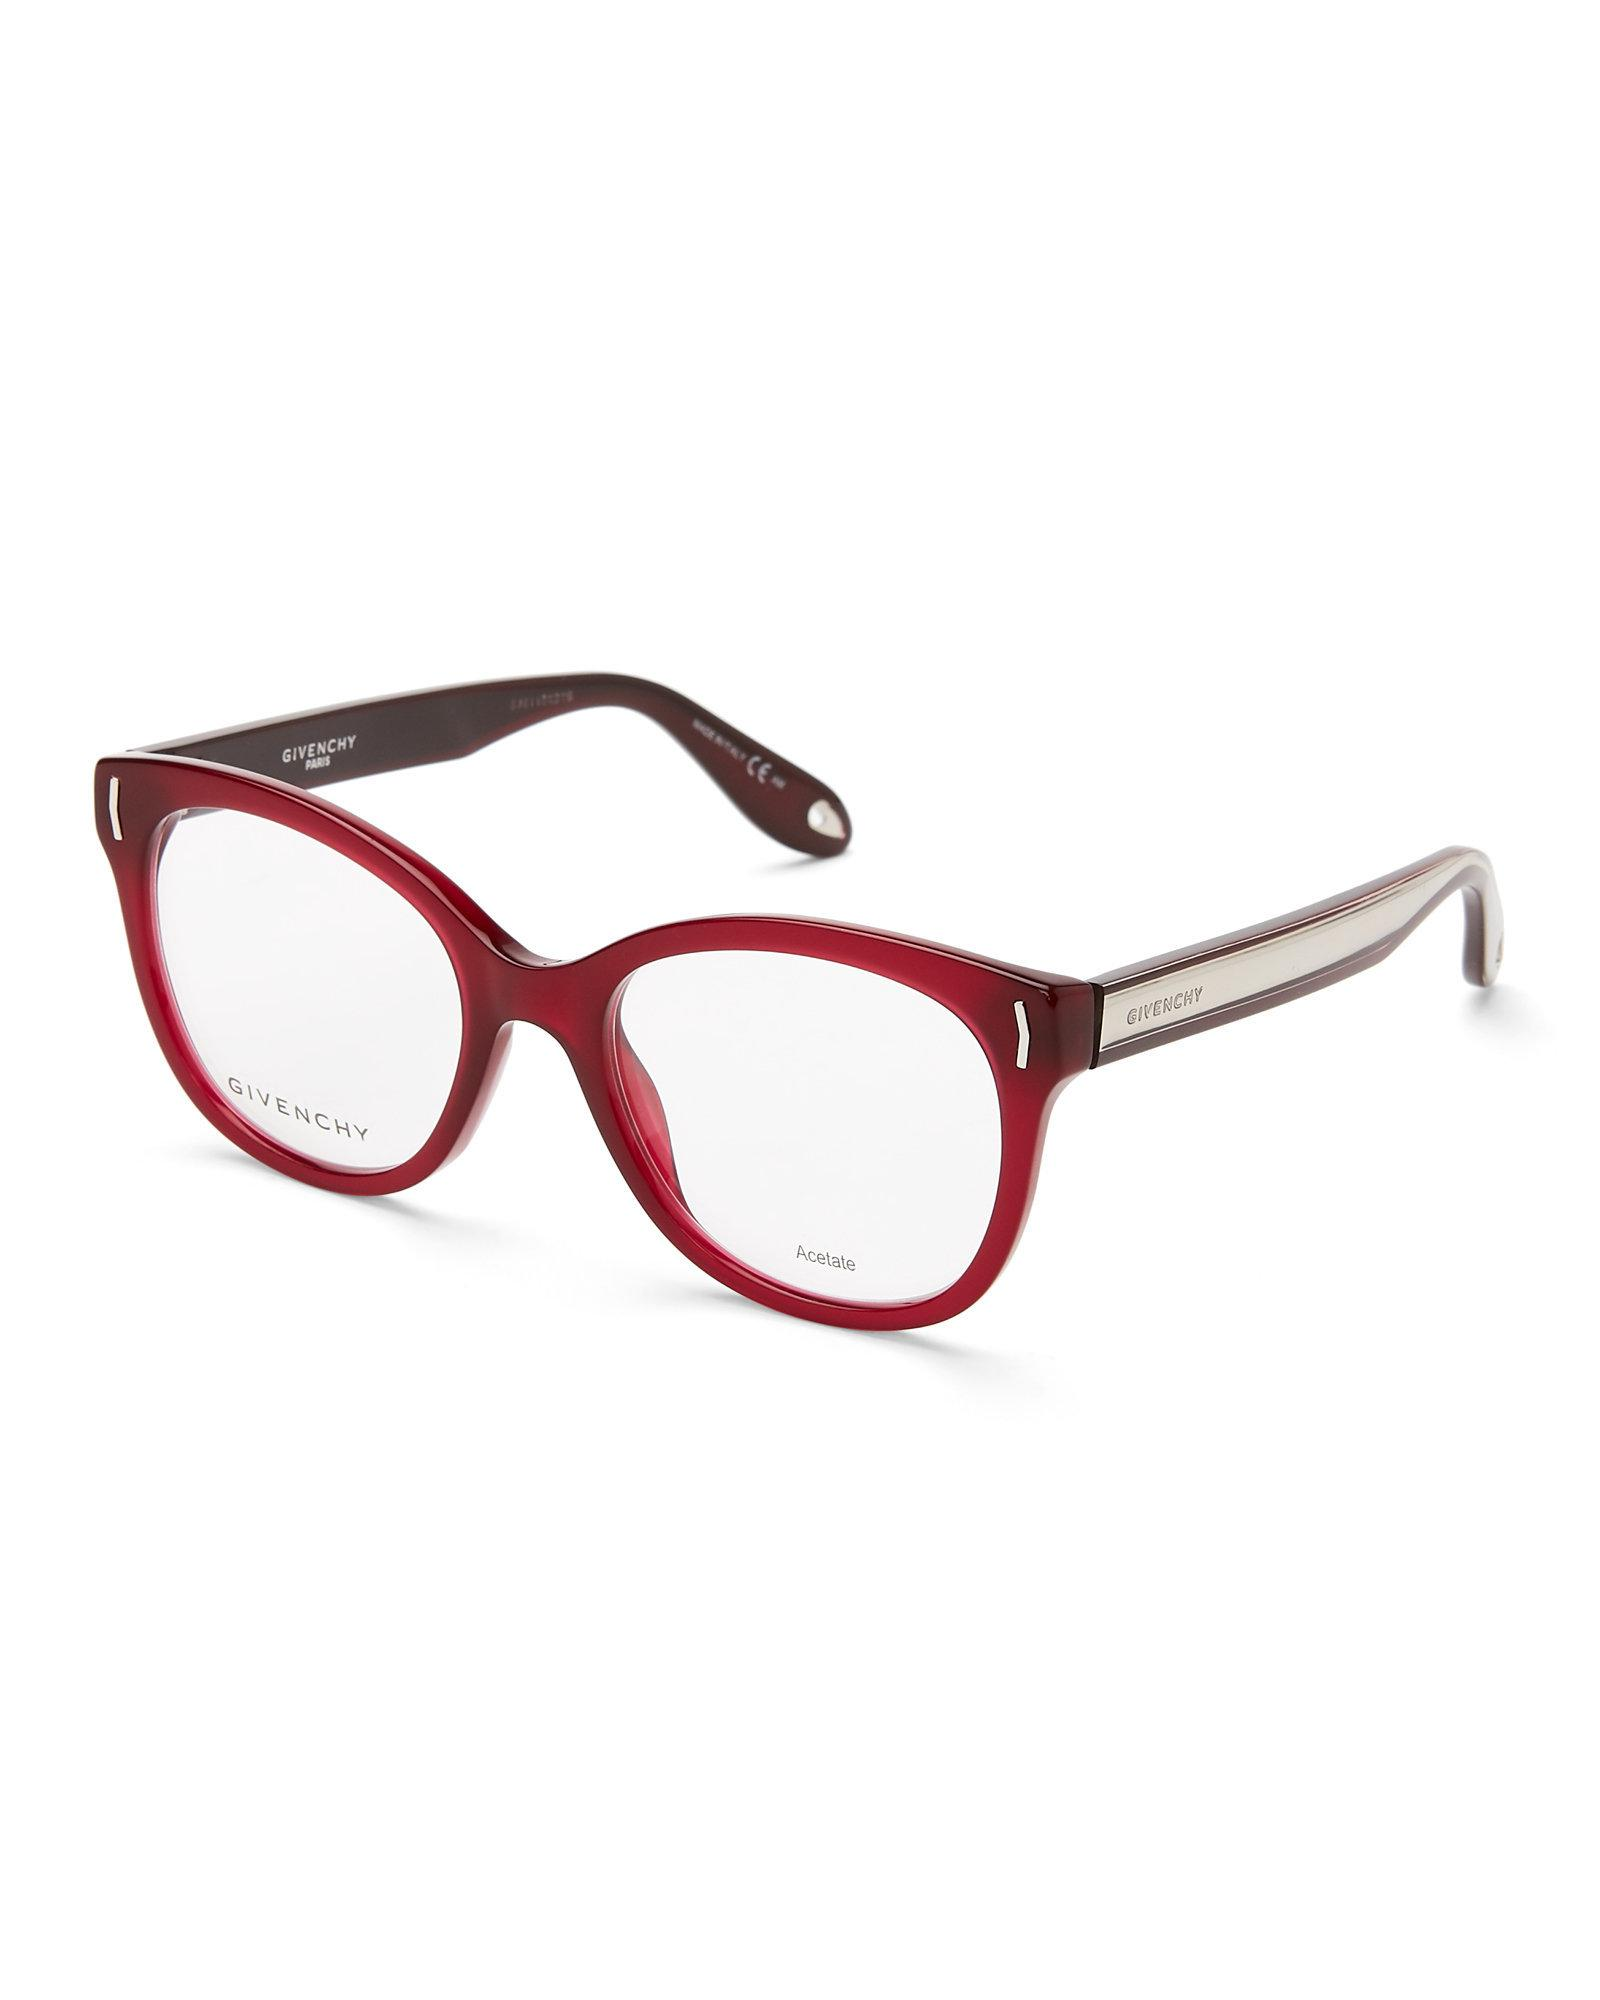 Lyst - Givenchy Burgundy Gv 0016 Burgundy Round Optical Frames in Red